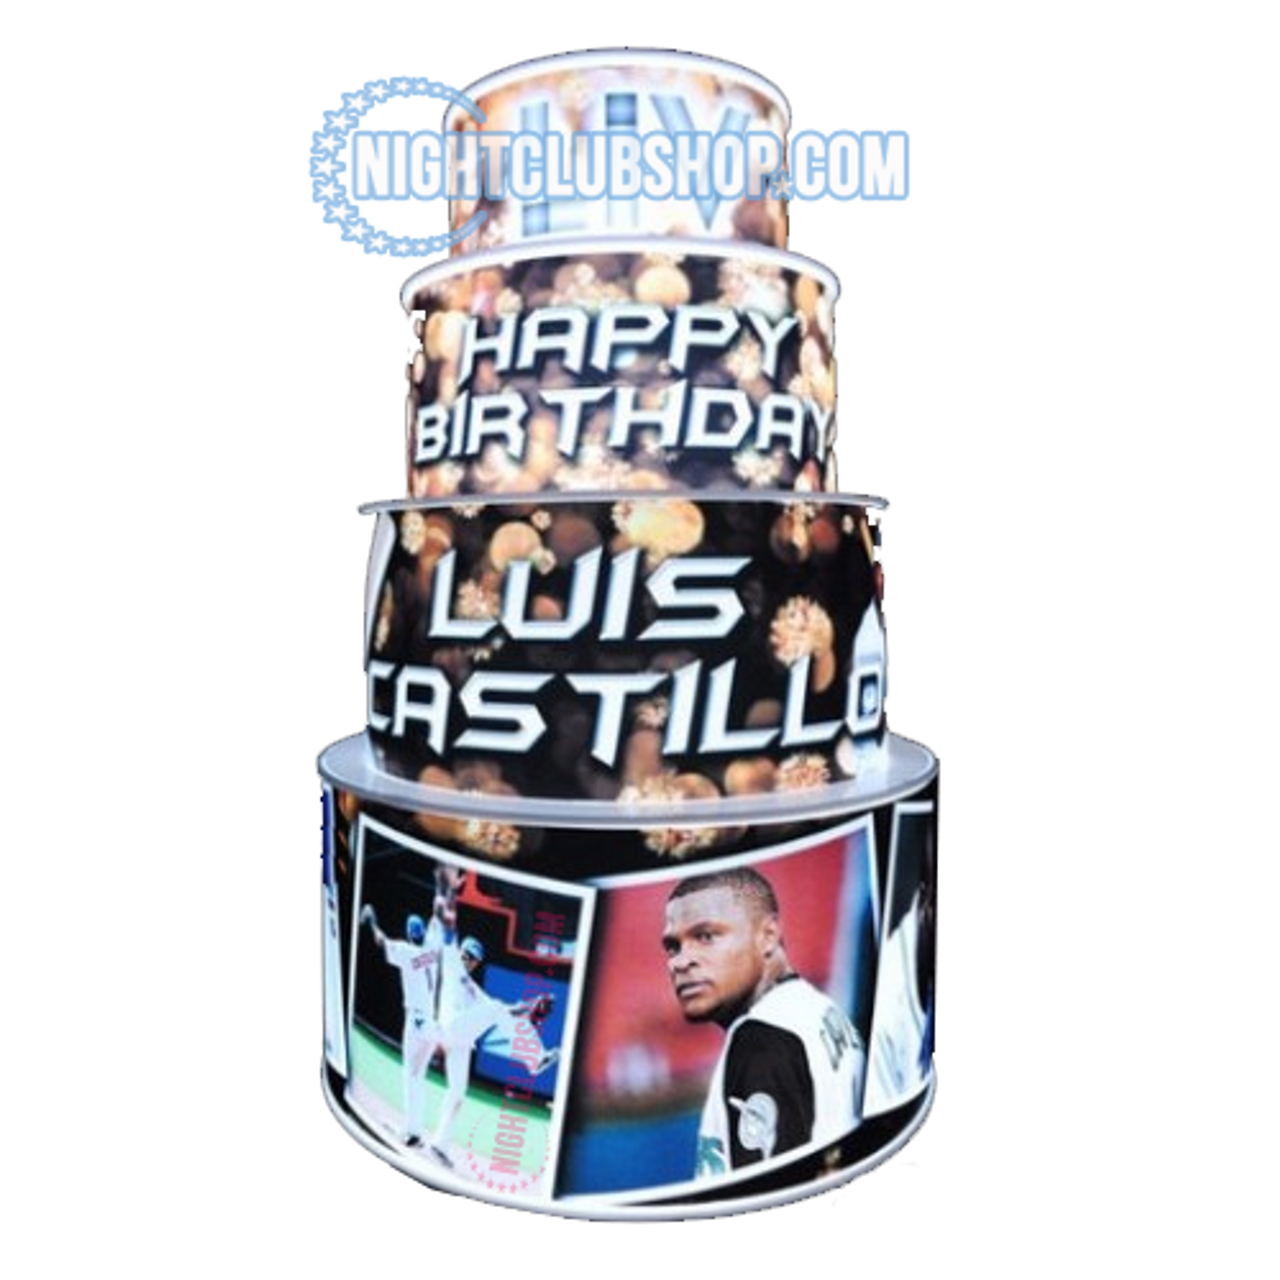 LED, Birthday, Cake, LEDCake, LED Cake, Light up, illuminated,custom,VIP, Bottle service, VIP cake, Cakes